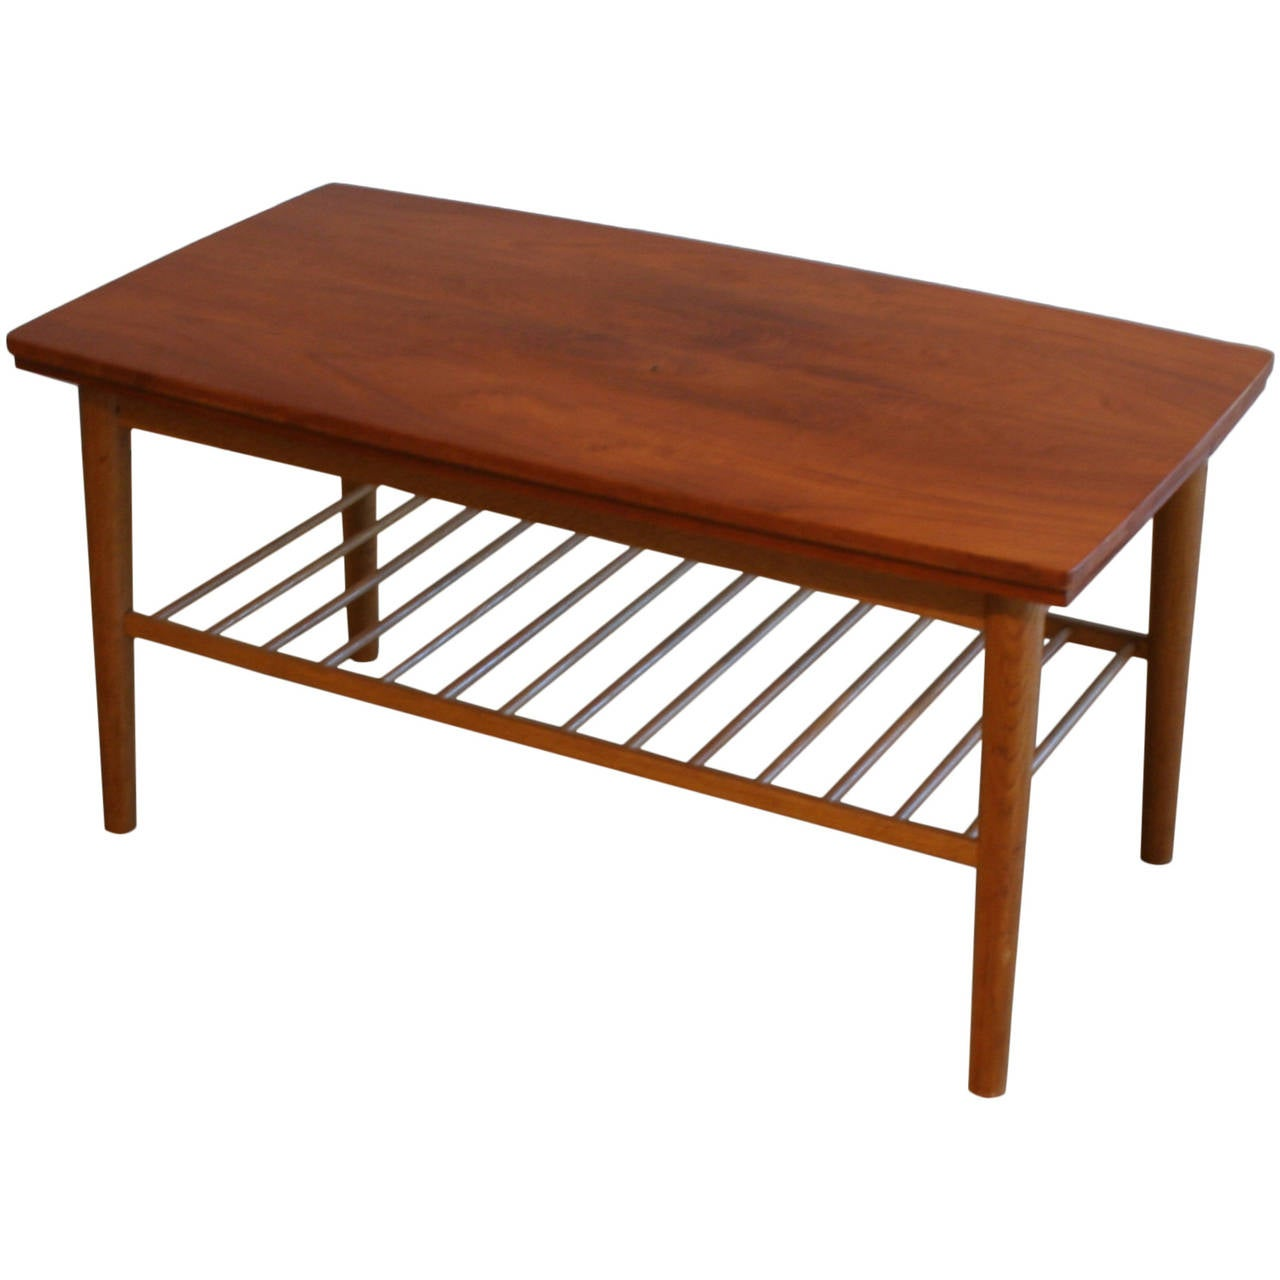 Vintage Danish Mahogany Coffee Table At 1stdibs